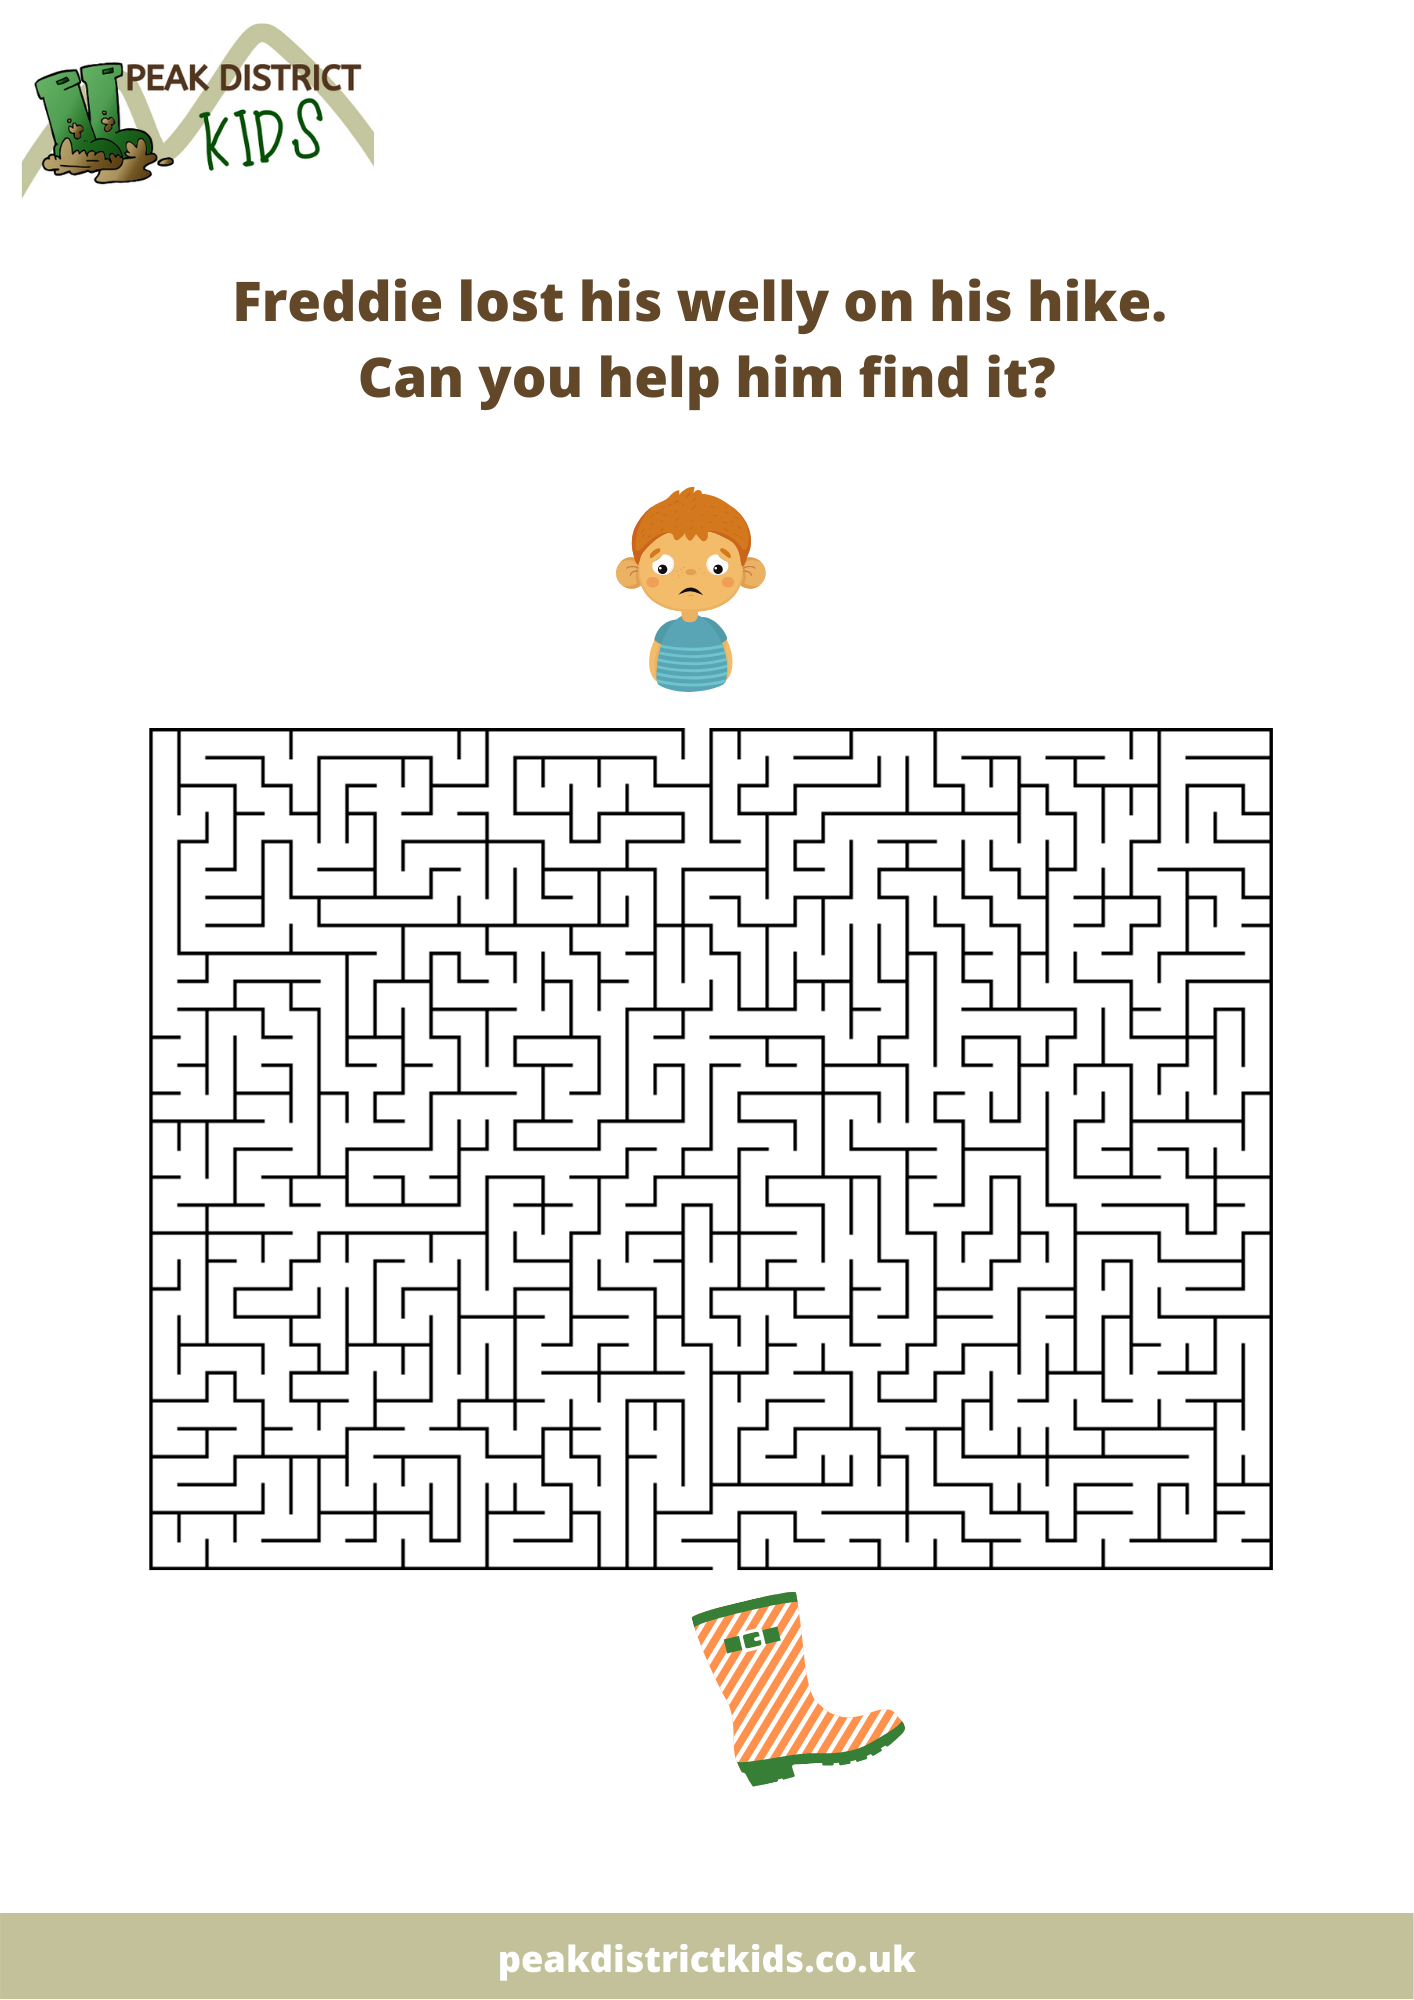 Help Freddie find his welly in the maze